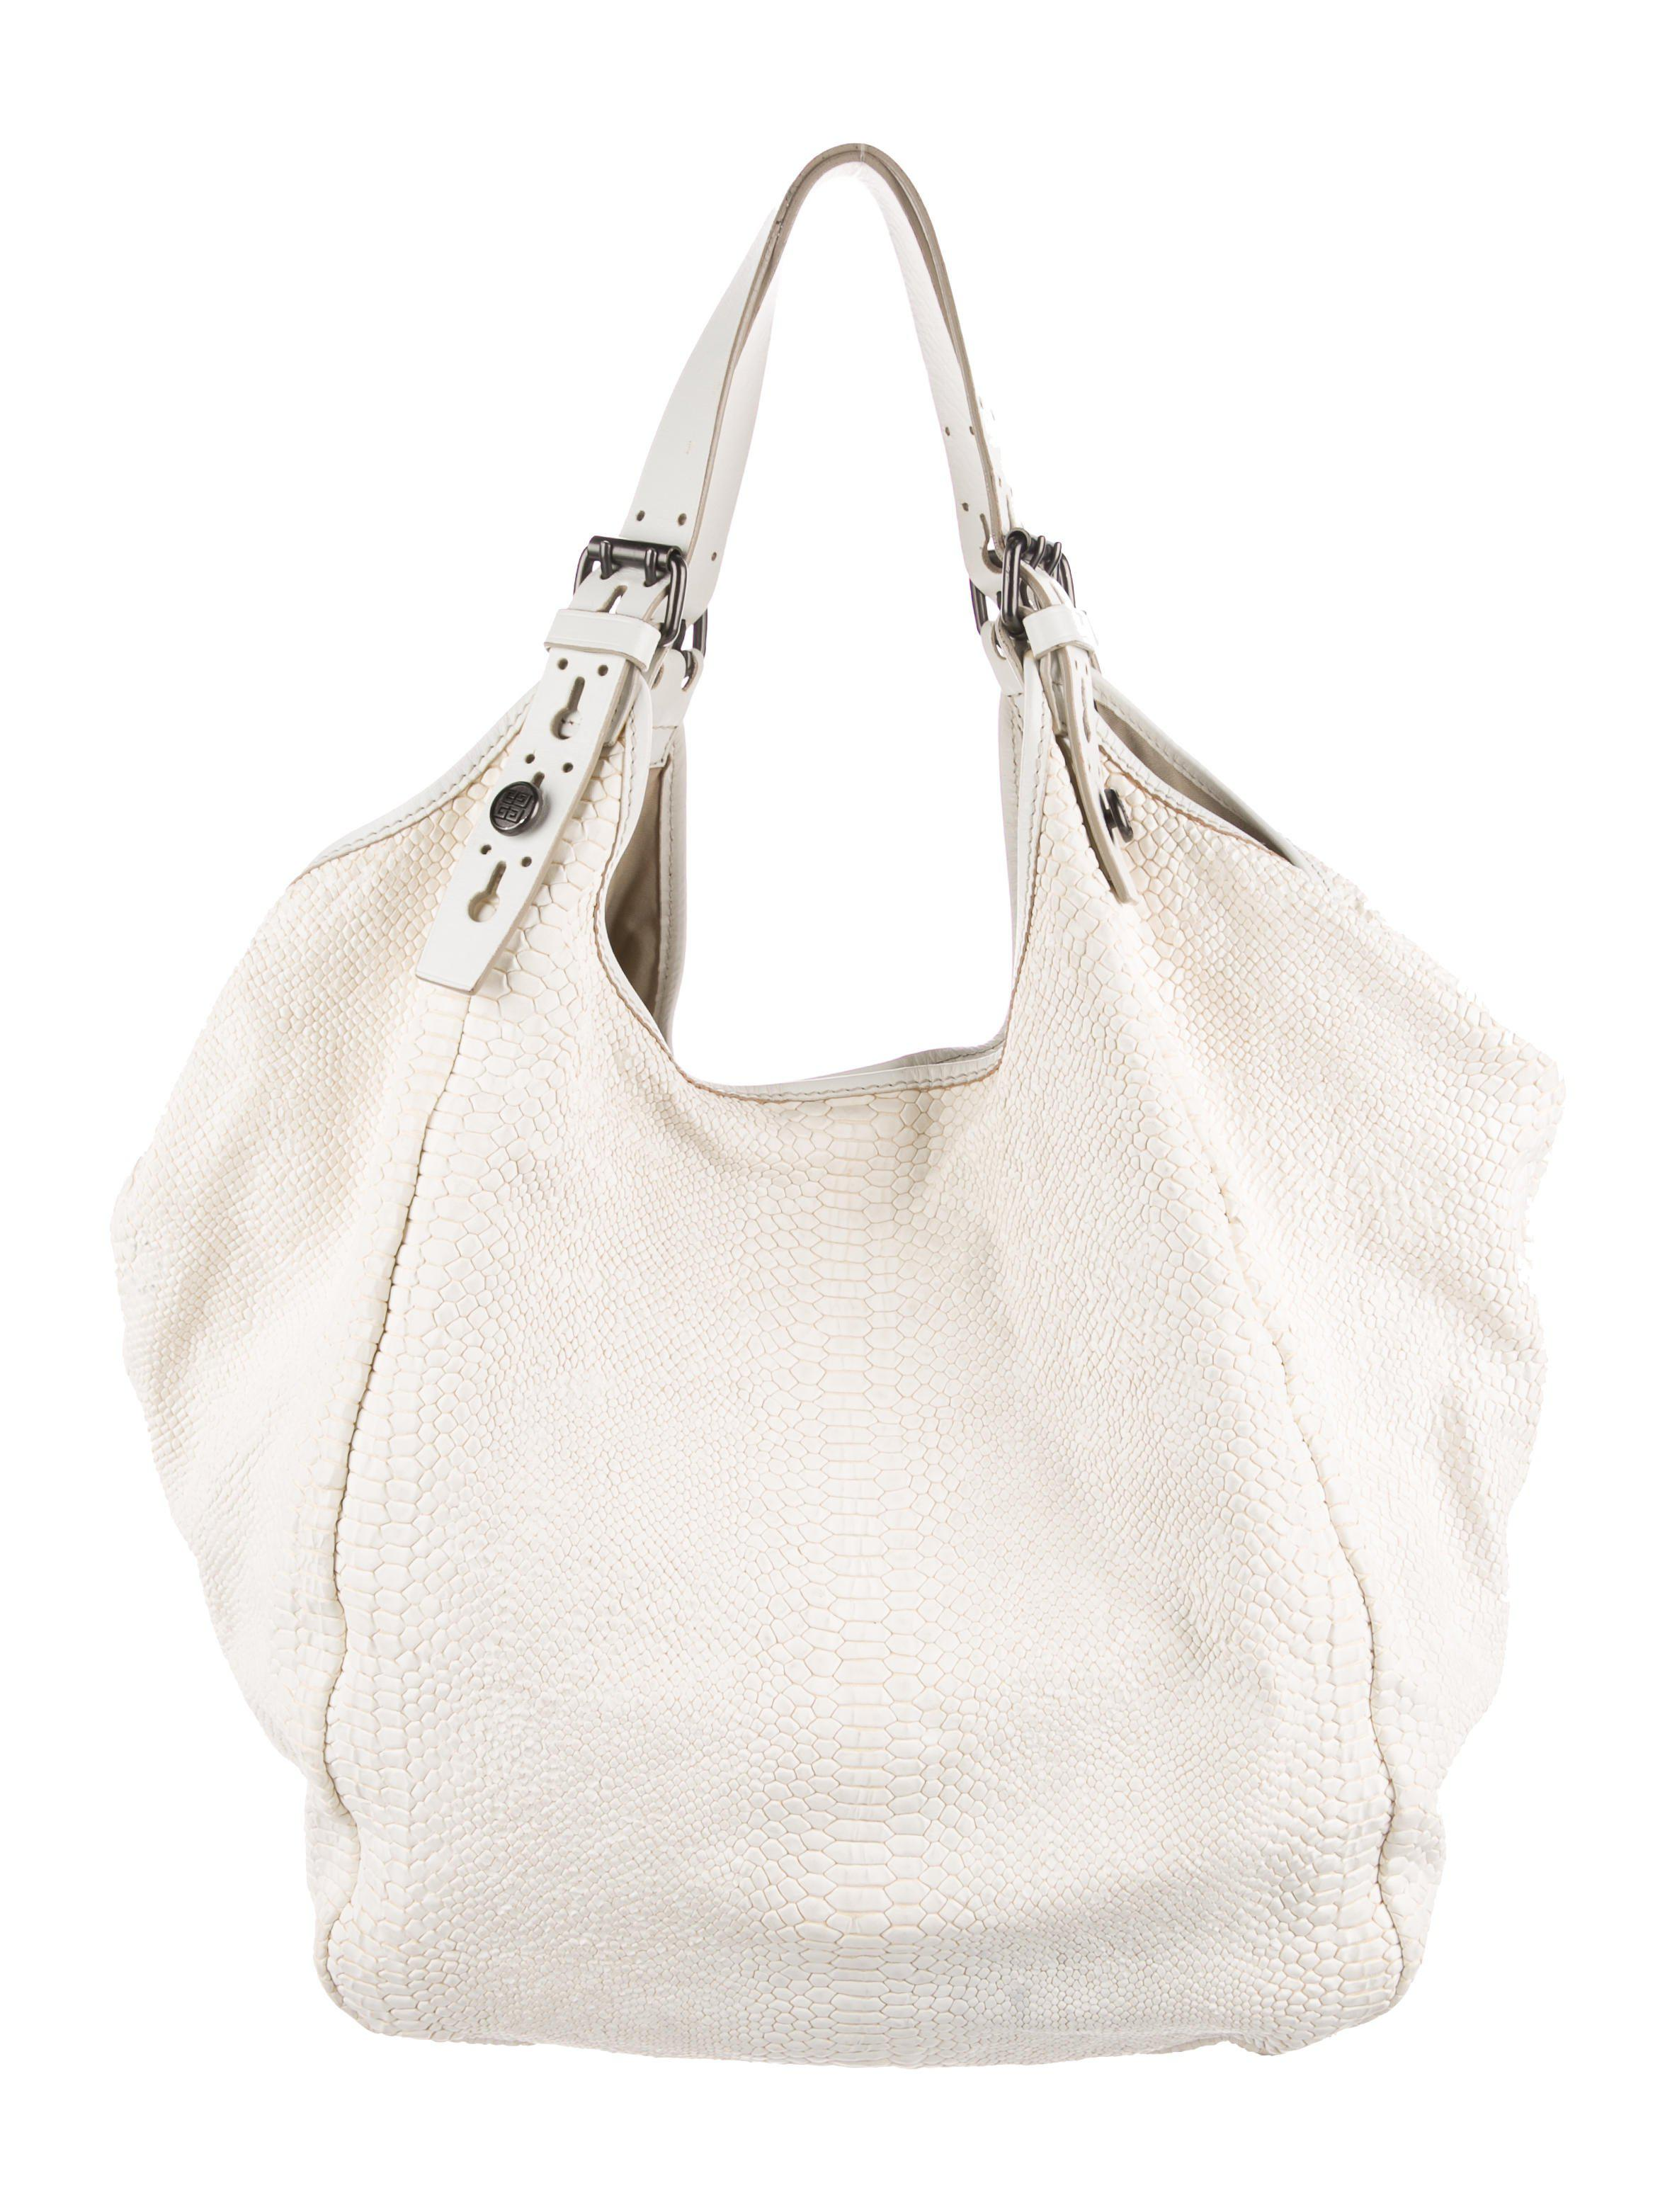 0c5a8c9a04c7 Lyst - Givenchy Tinhan Embossed Leather Hobo Beige in Natural